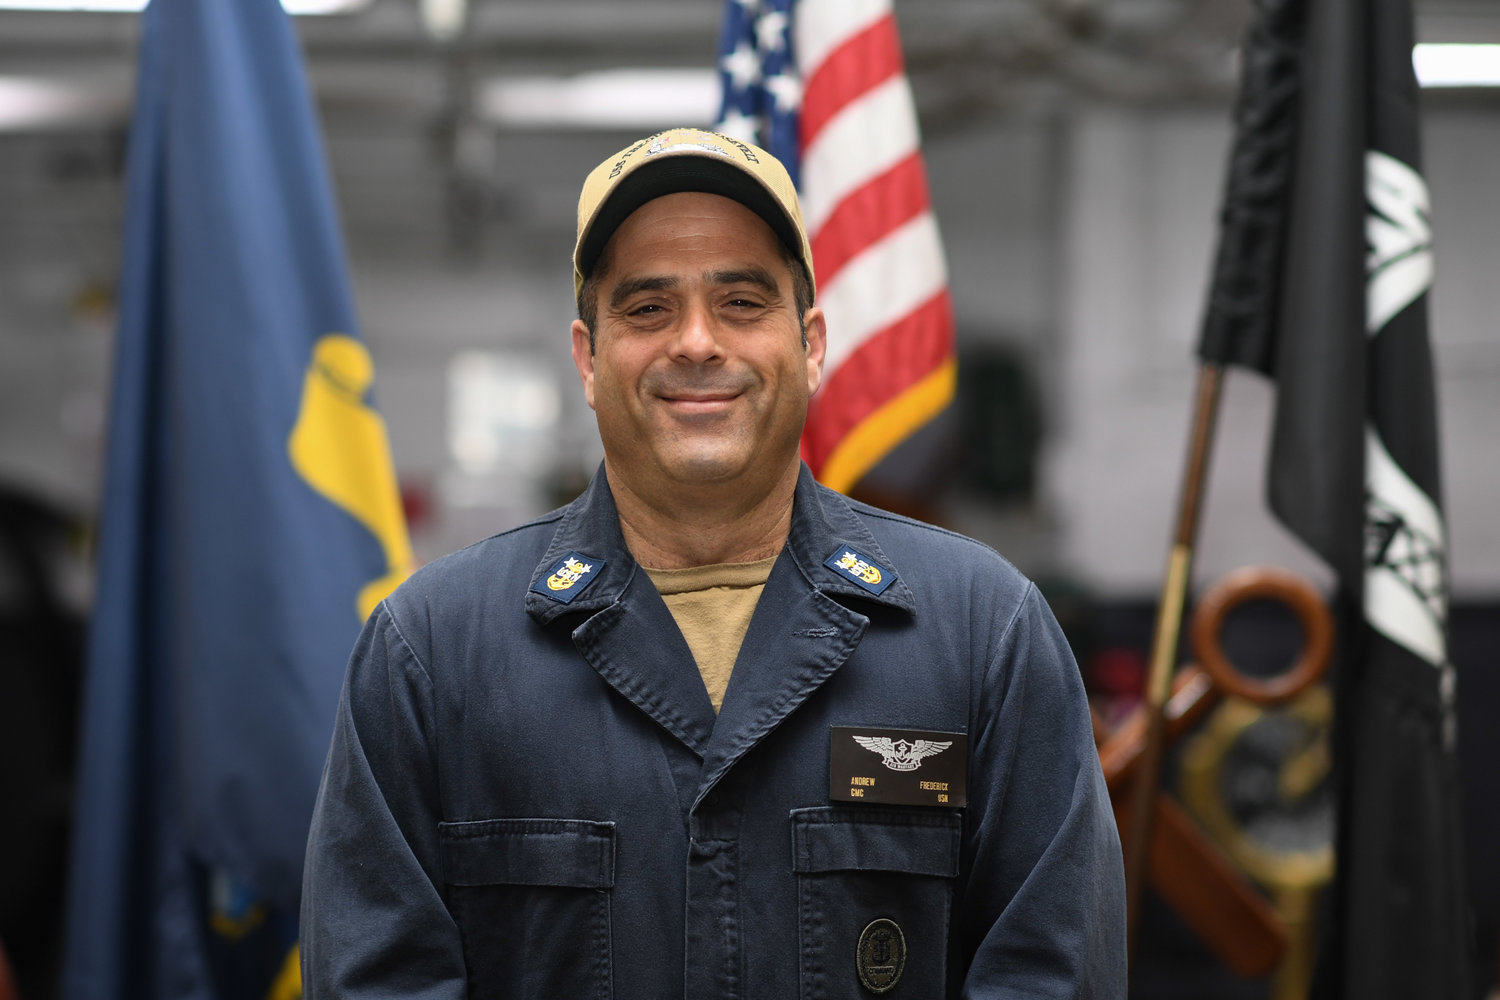 Andrew Frederick, who graduated from East Meadow High School in 1984, is a command master chief in the U.S. Navy aboard the aircraft carrier USS Theodore Roosevelt.